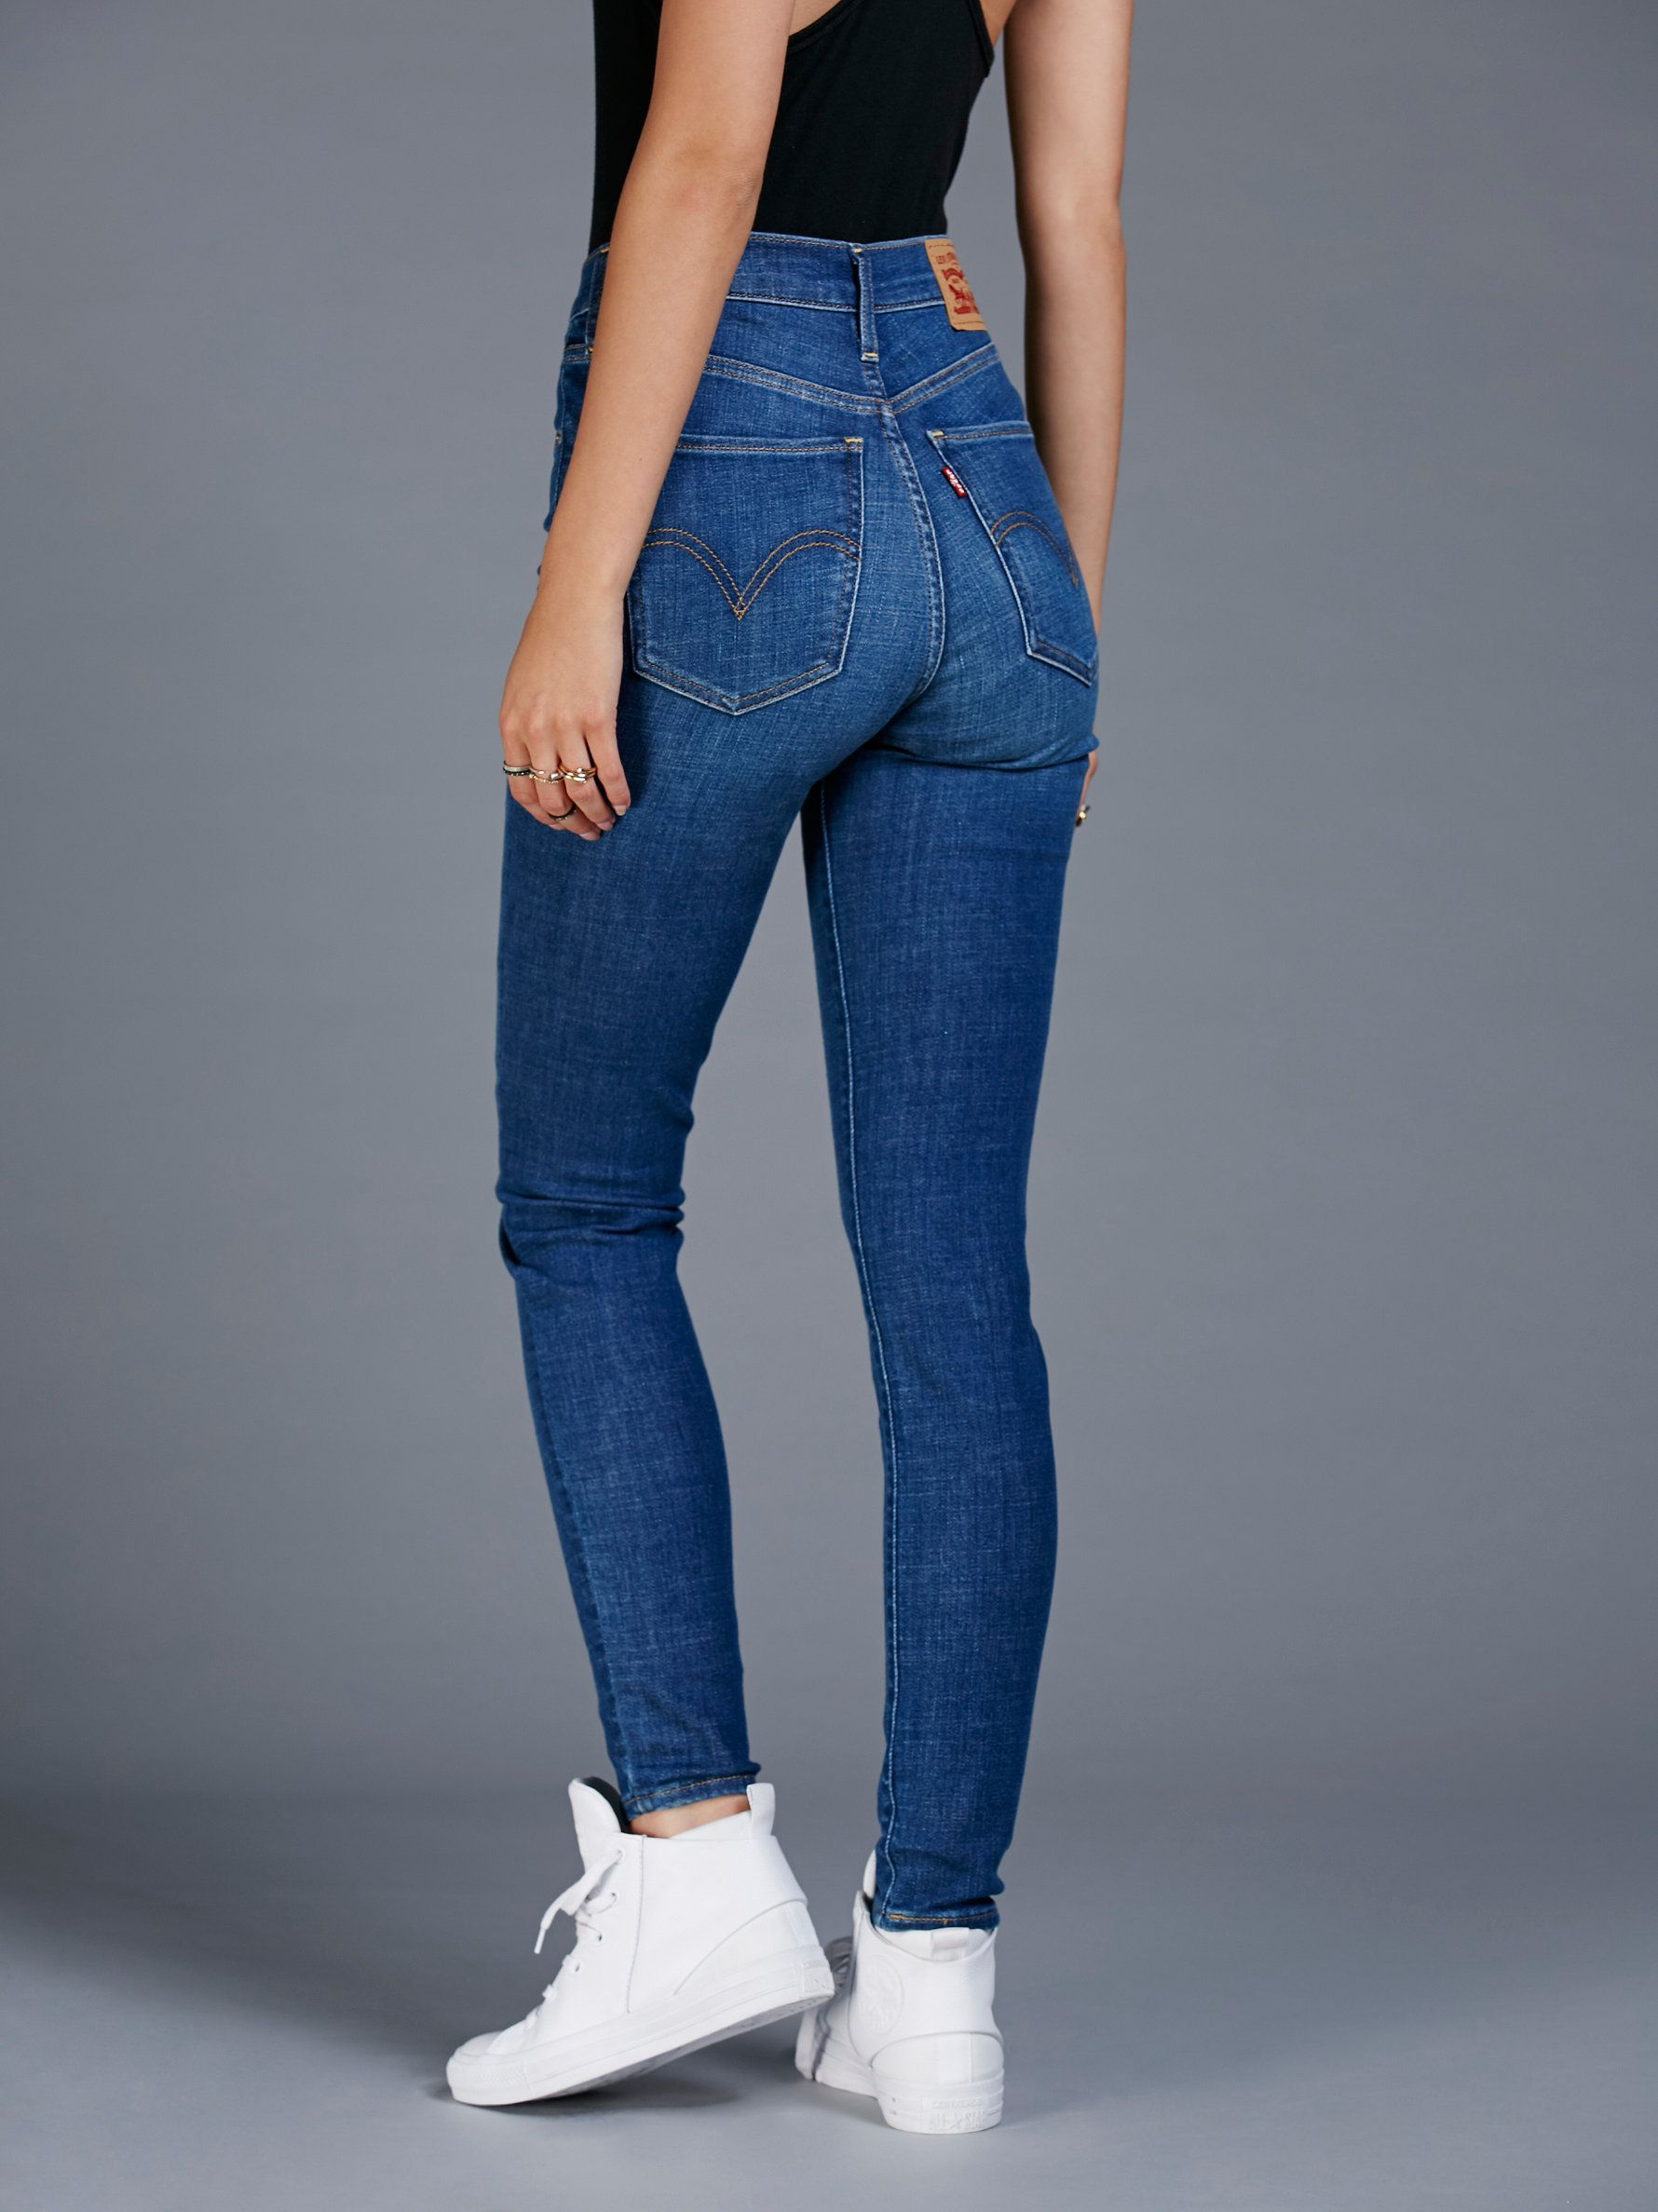 best value hot products nice cheap Levi's Mile High Super Skinny Jeans   Fashion in 2019 ...